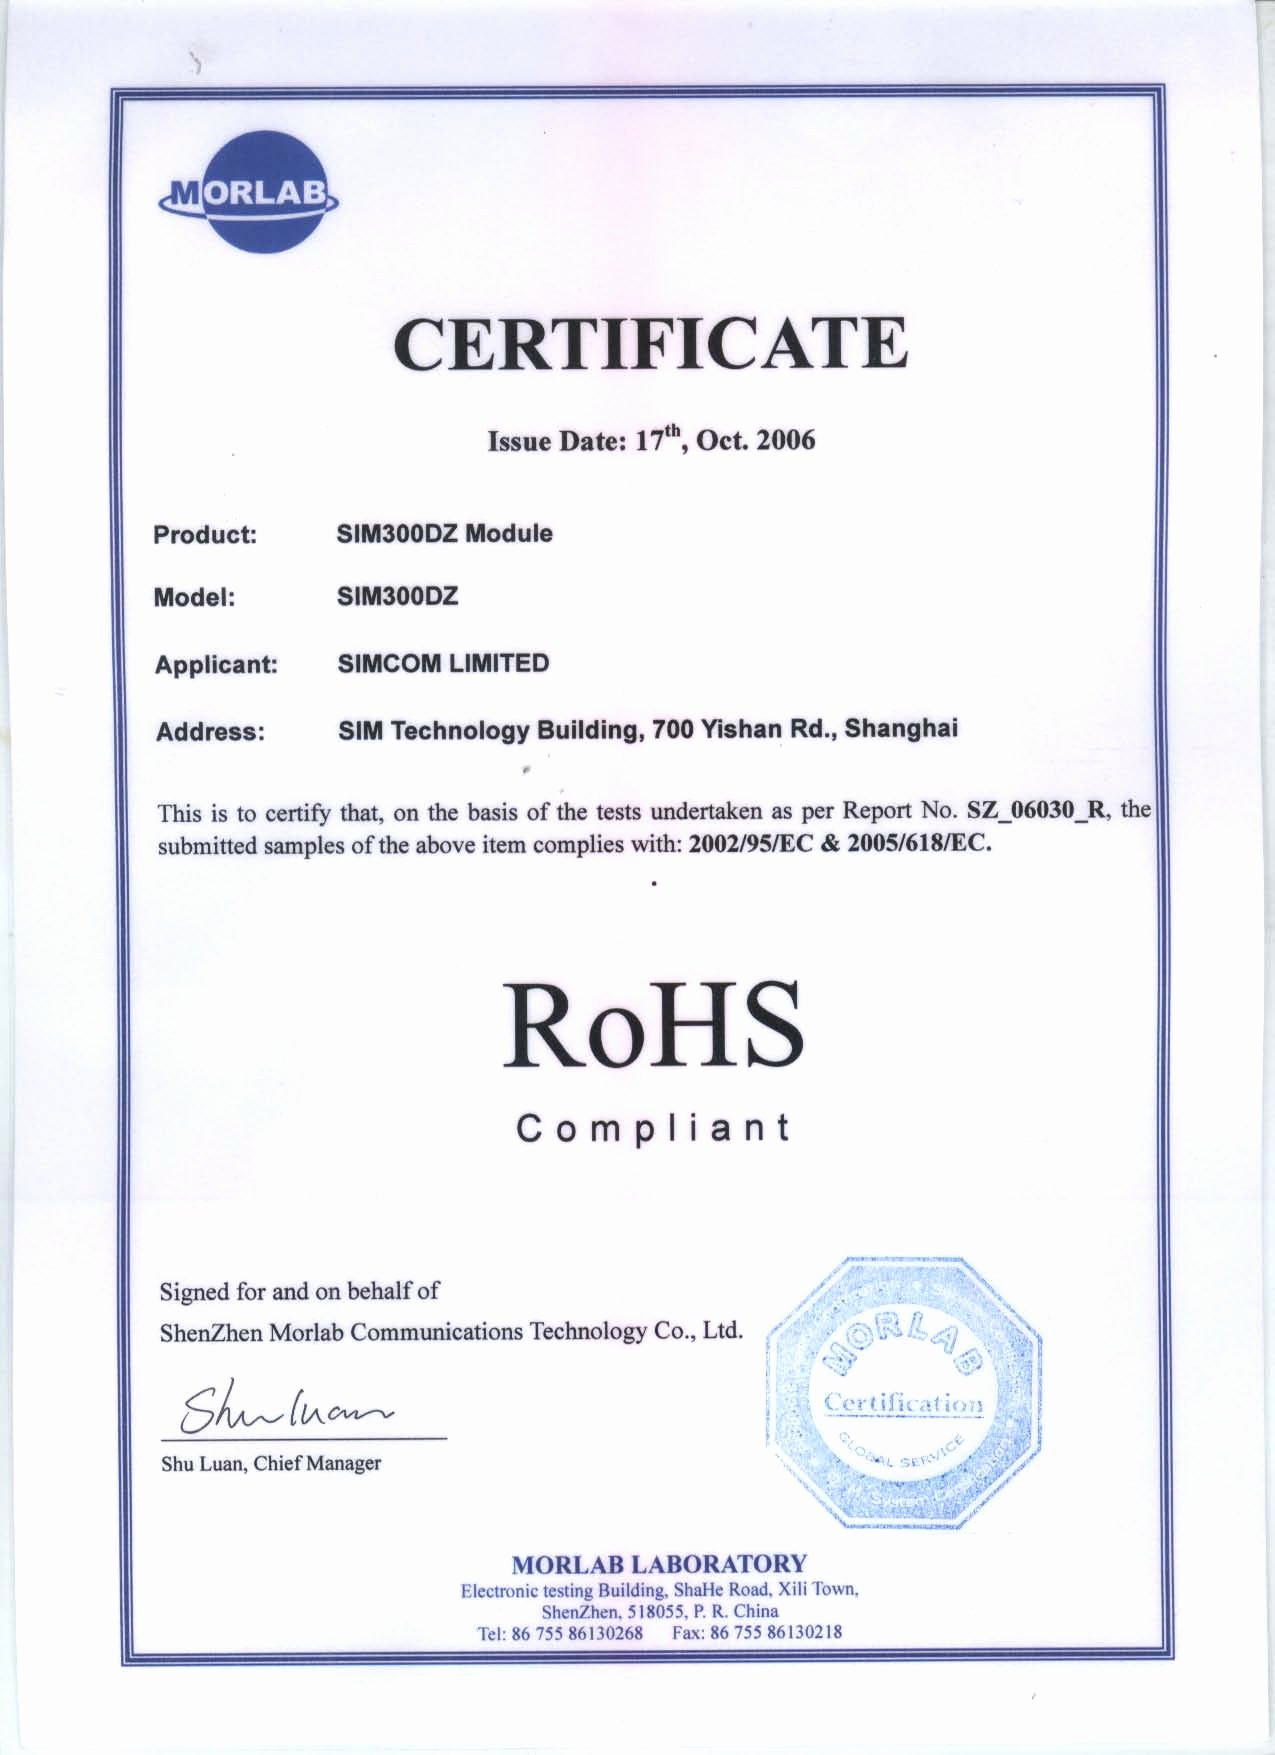 Rohs Compliant Certificate Template Elegant Rohs Certificate for Gsm Module Meitrack Group